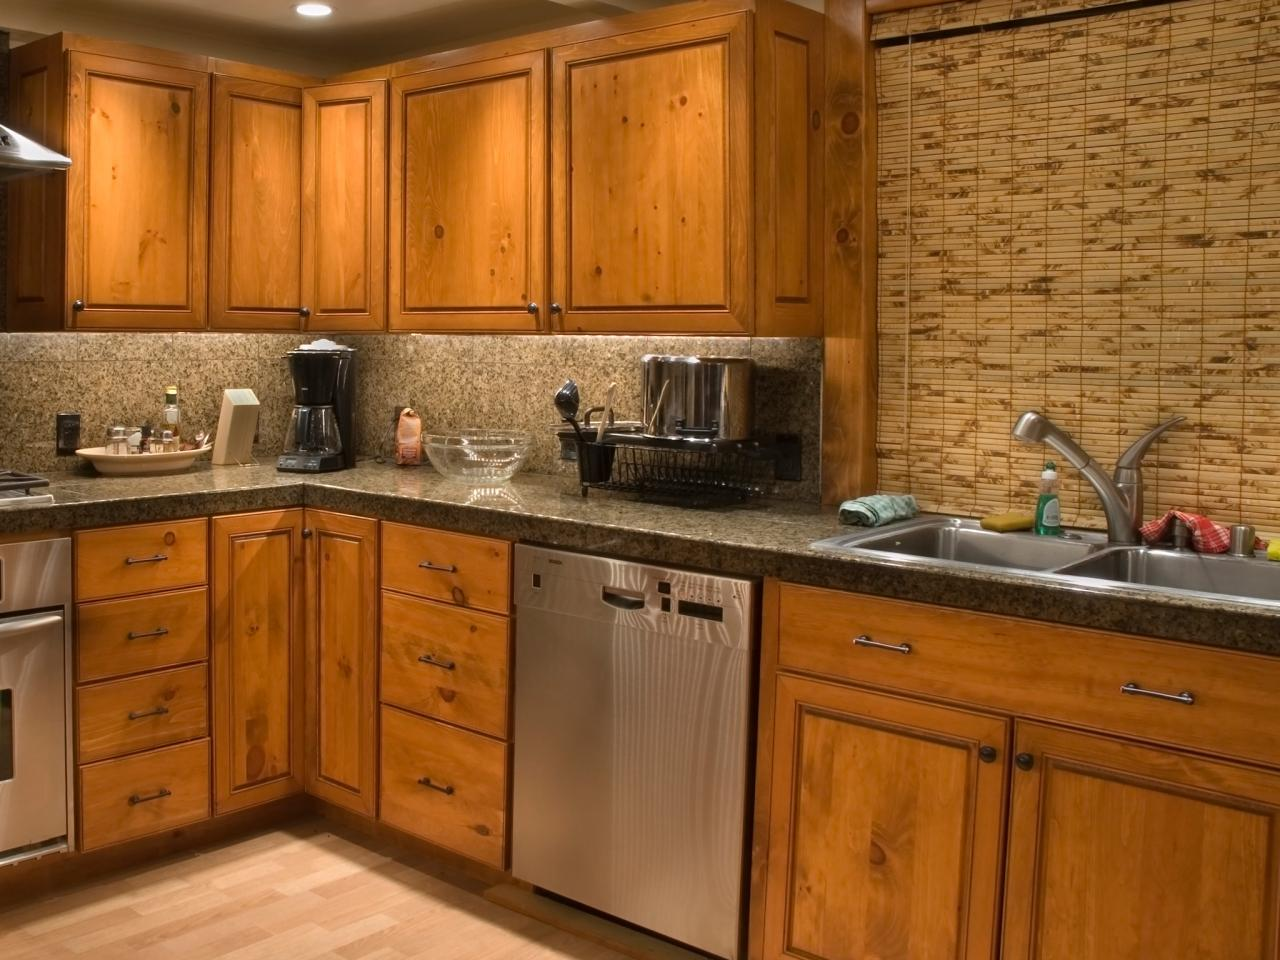 unfinished kitchen cabinet doors: pictures, options, tips & ideas